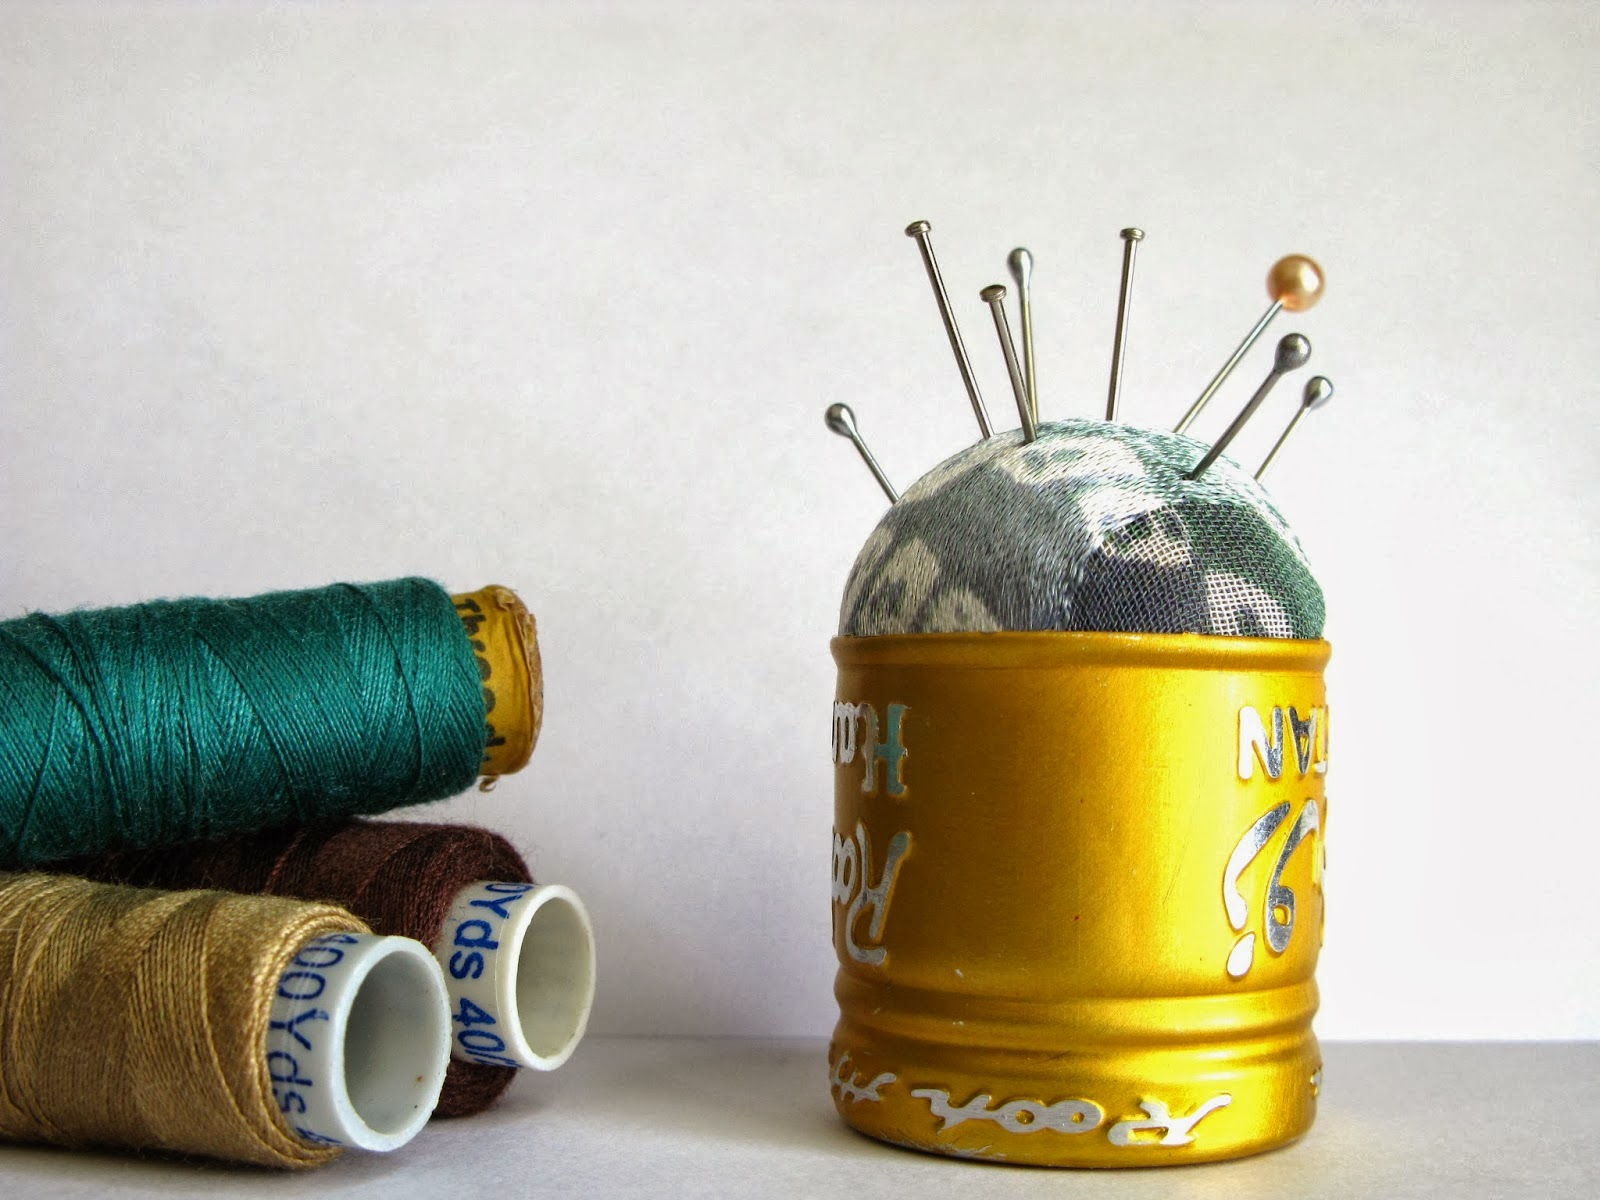 http://alternatecreations.blogspot.ae/2014/02/no-sew-bottle-cap-pin-cushion.html